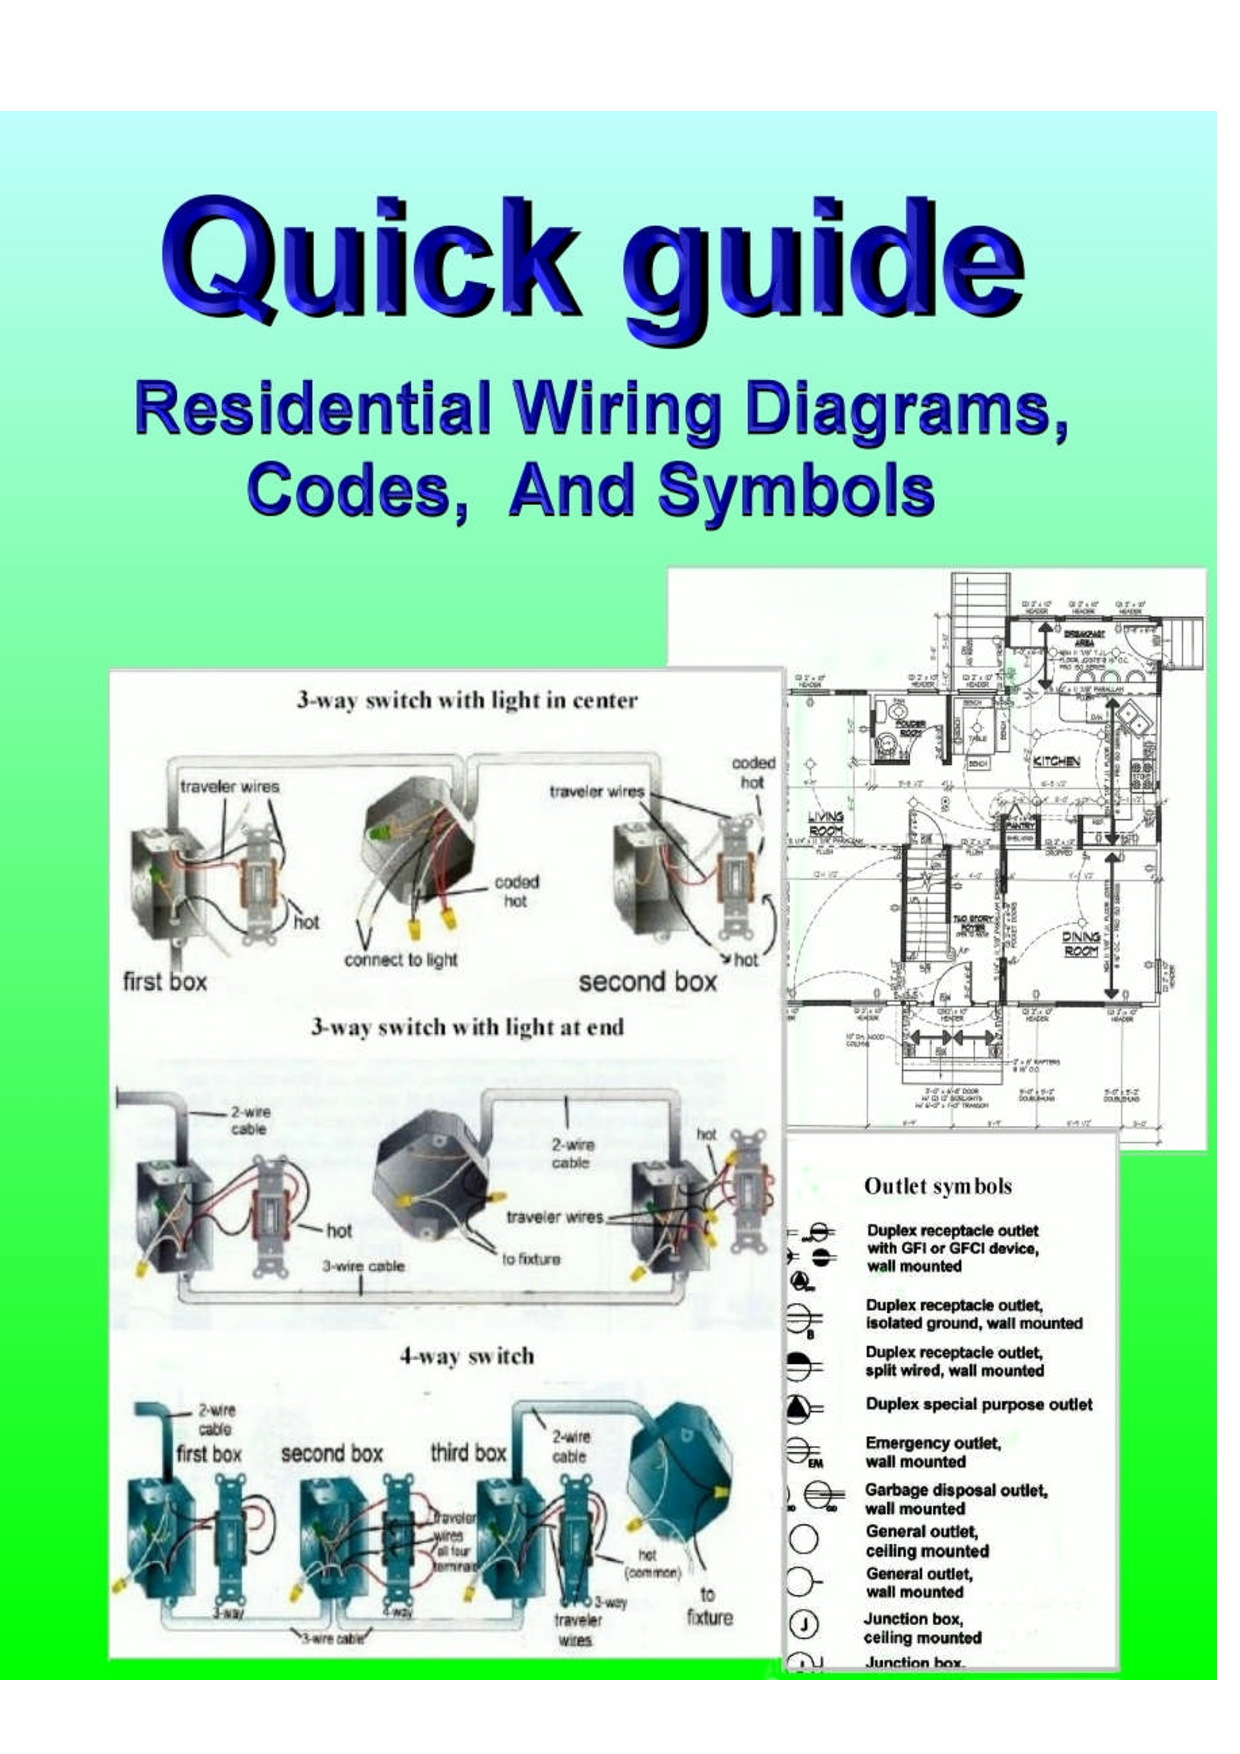 home electrical wiring diagrams pdf download legal documents 39 diy home electrical wiring plans diy home electrical wiring [ 1240 x 1754 Pixel ]